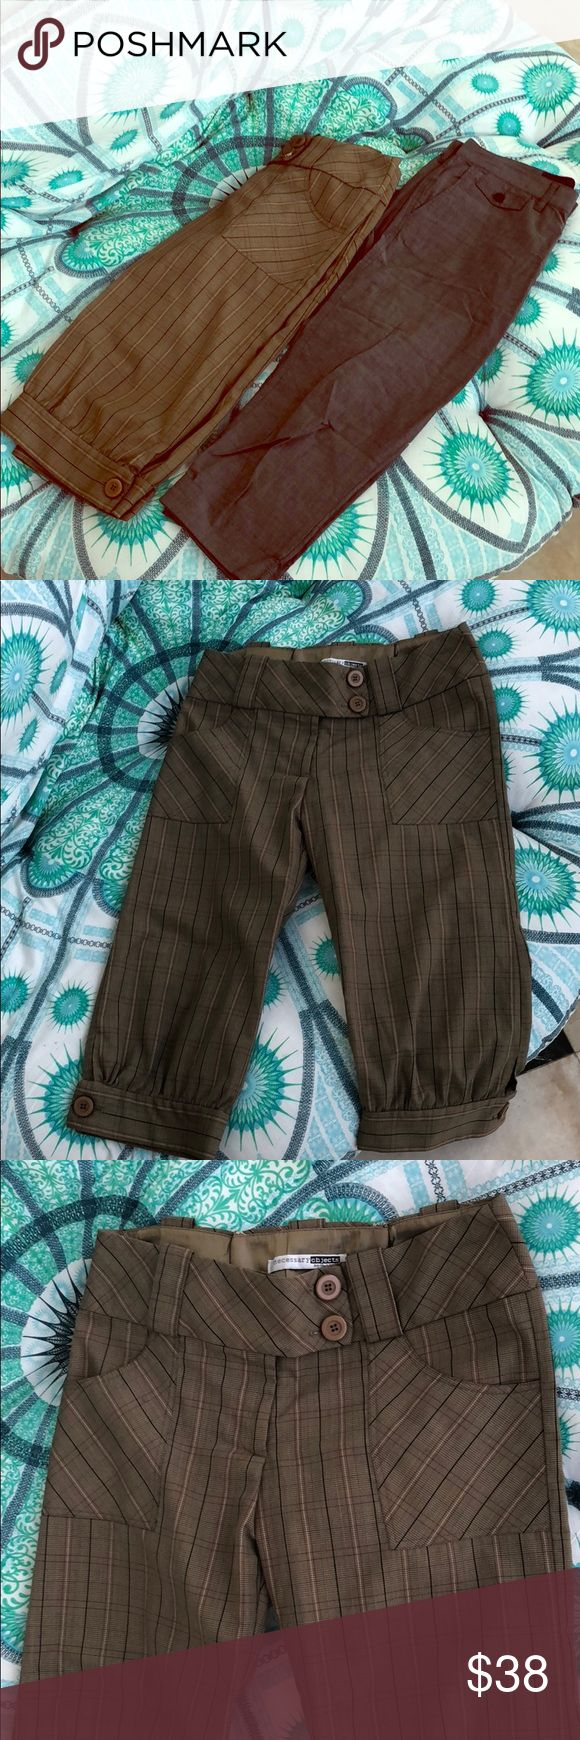 Bundle - Riding Pants - Comfy & Trendy Bundle - Riding Pants - Comfy & Trendy Linen  Buy 1 or both! 15% Bundle Discount applies   Great Preloved Condition! Barely worn   Both Size 4 Measurements available upon request Pants Trousers